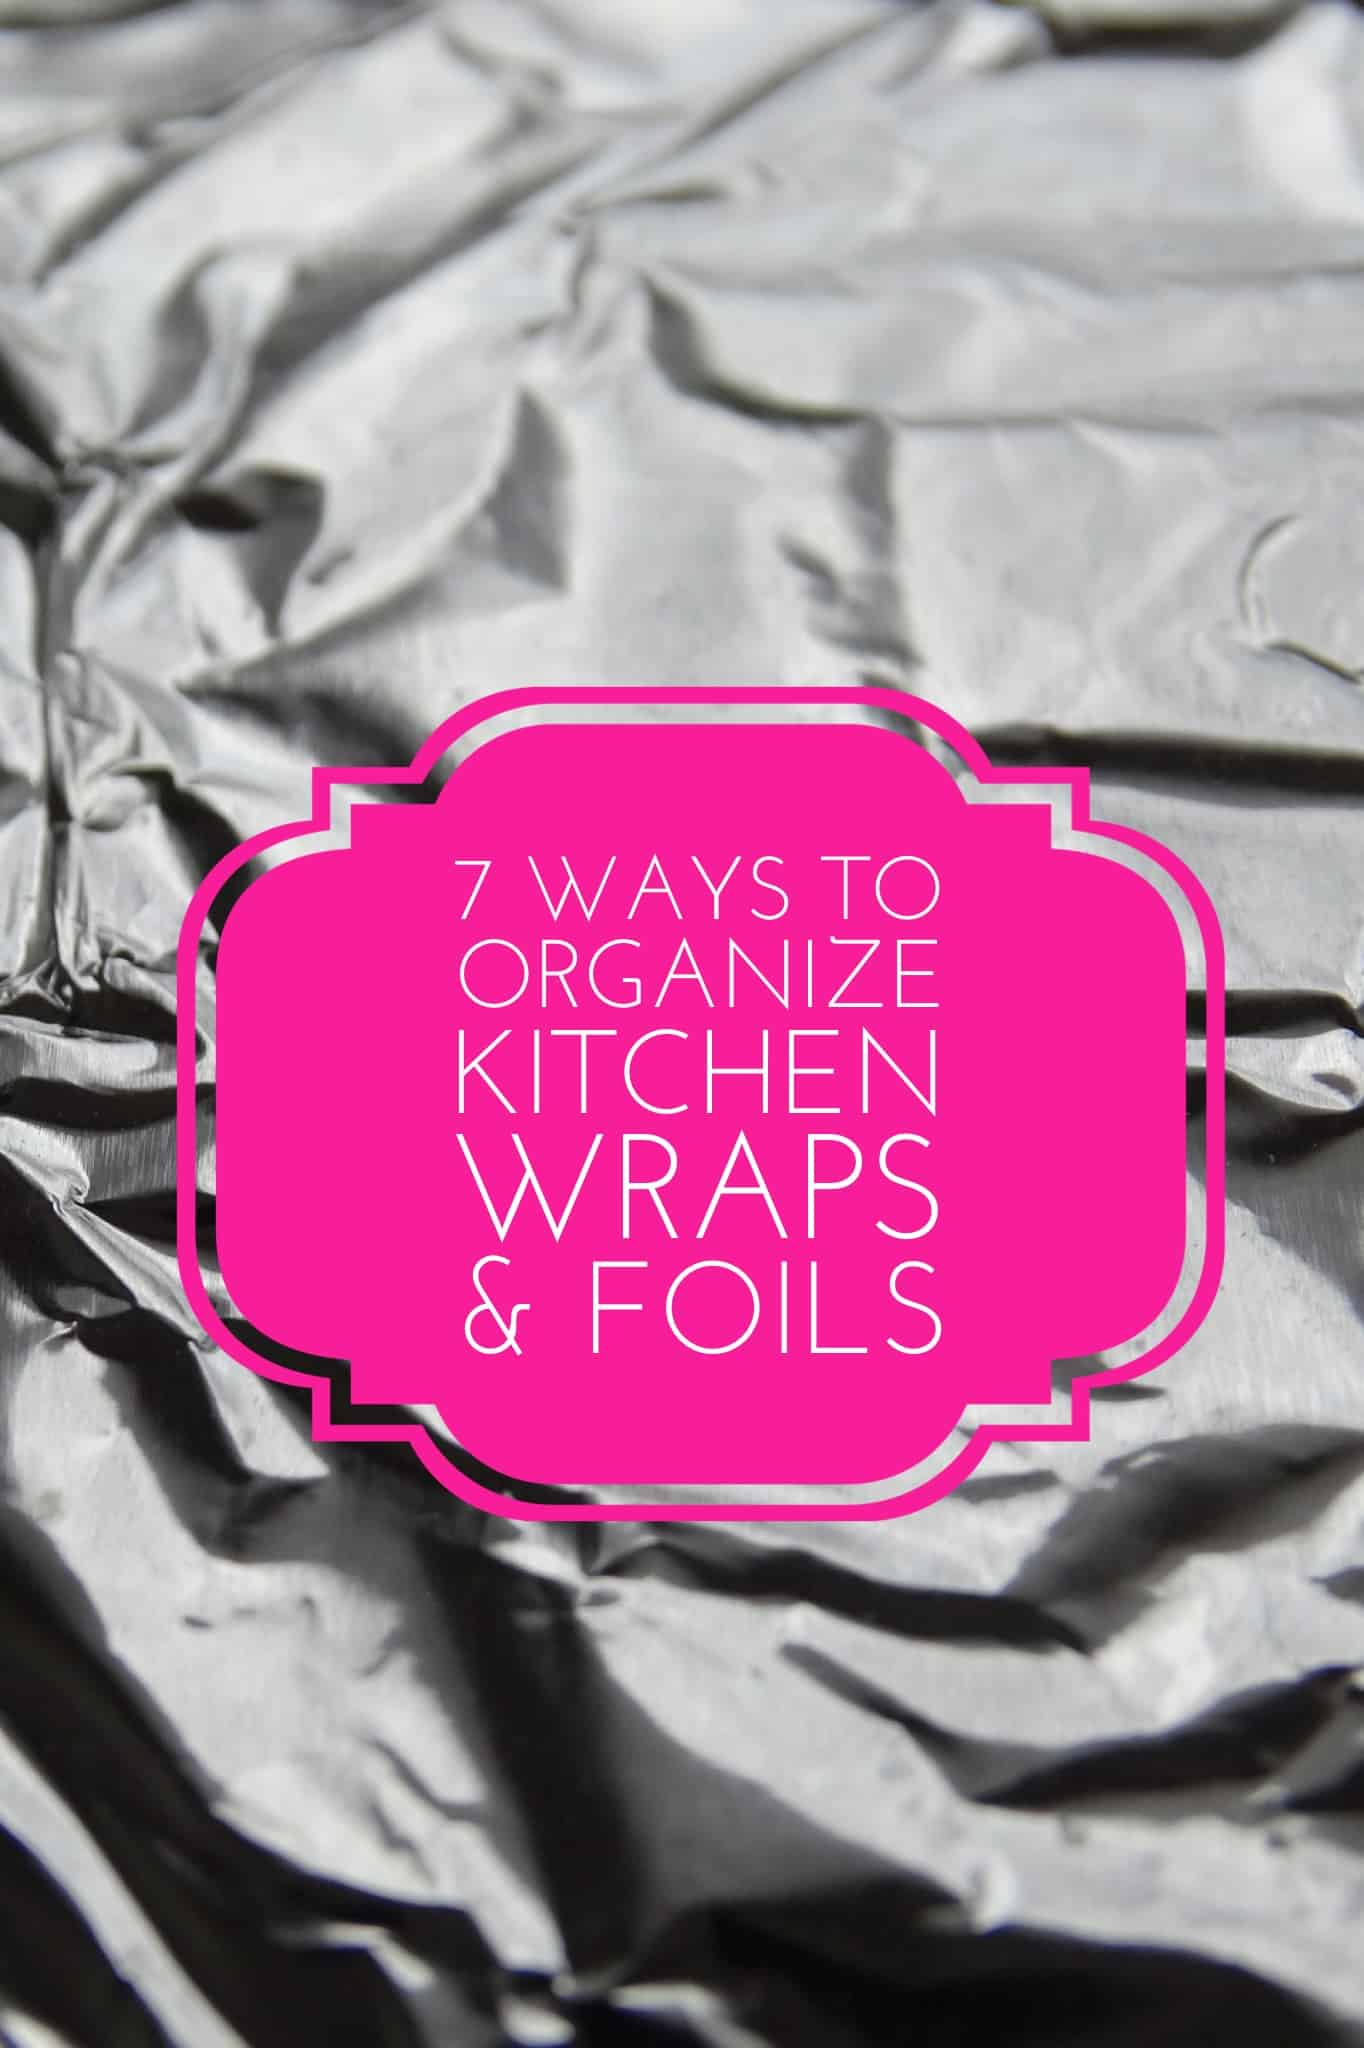 7 ways to organize wraps and foils title image